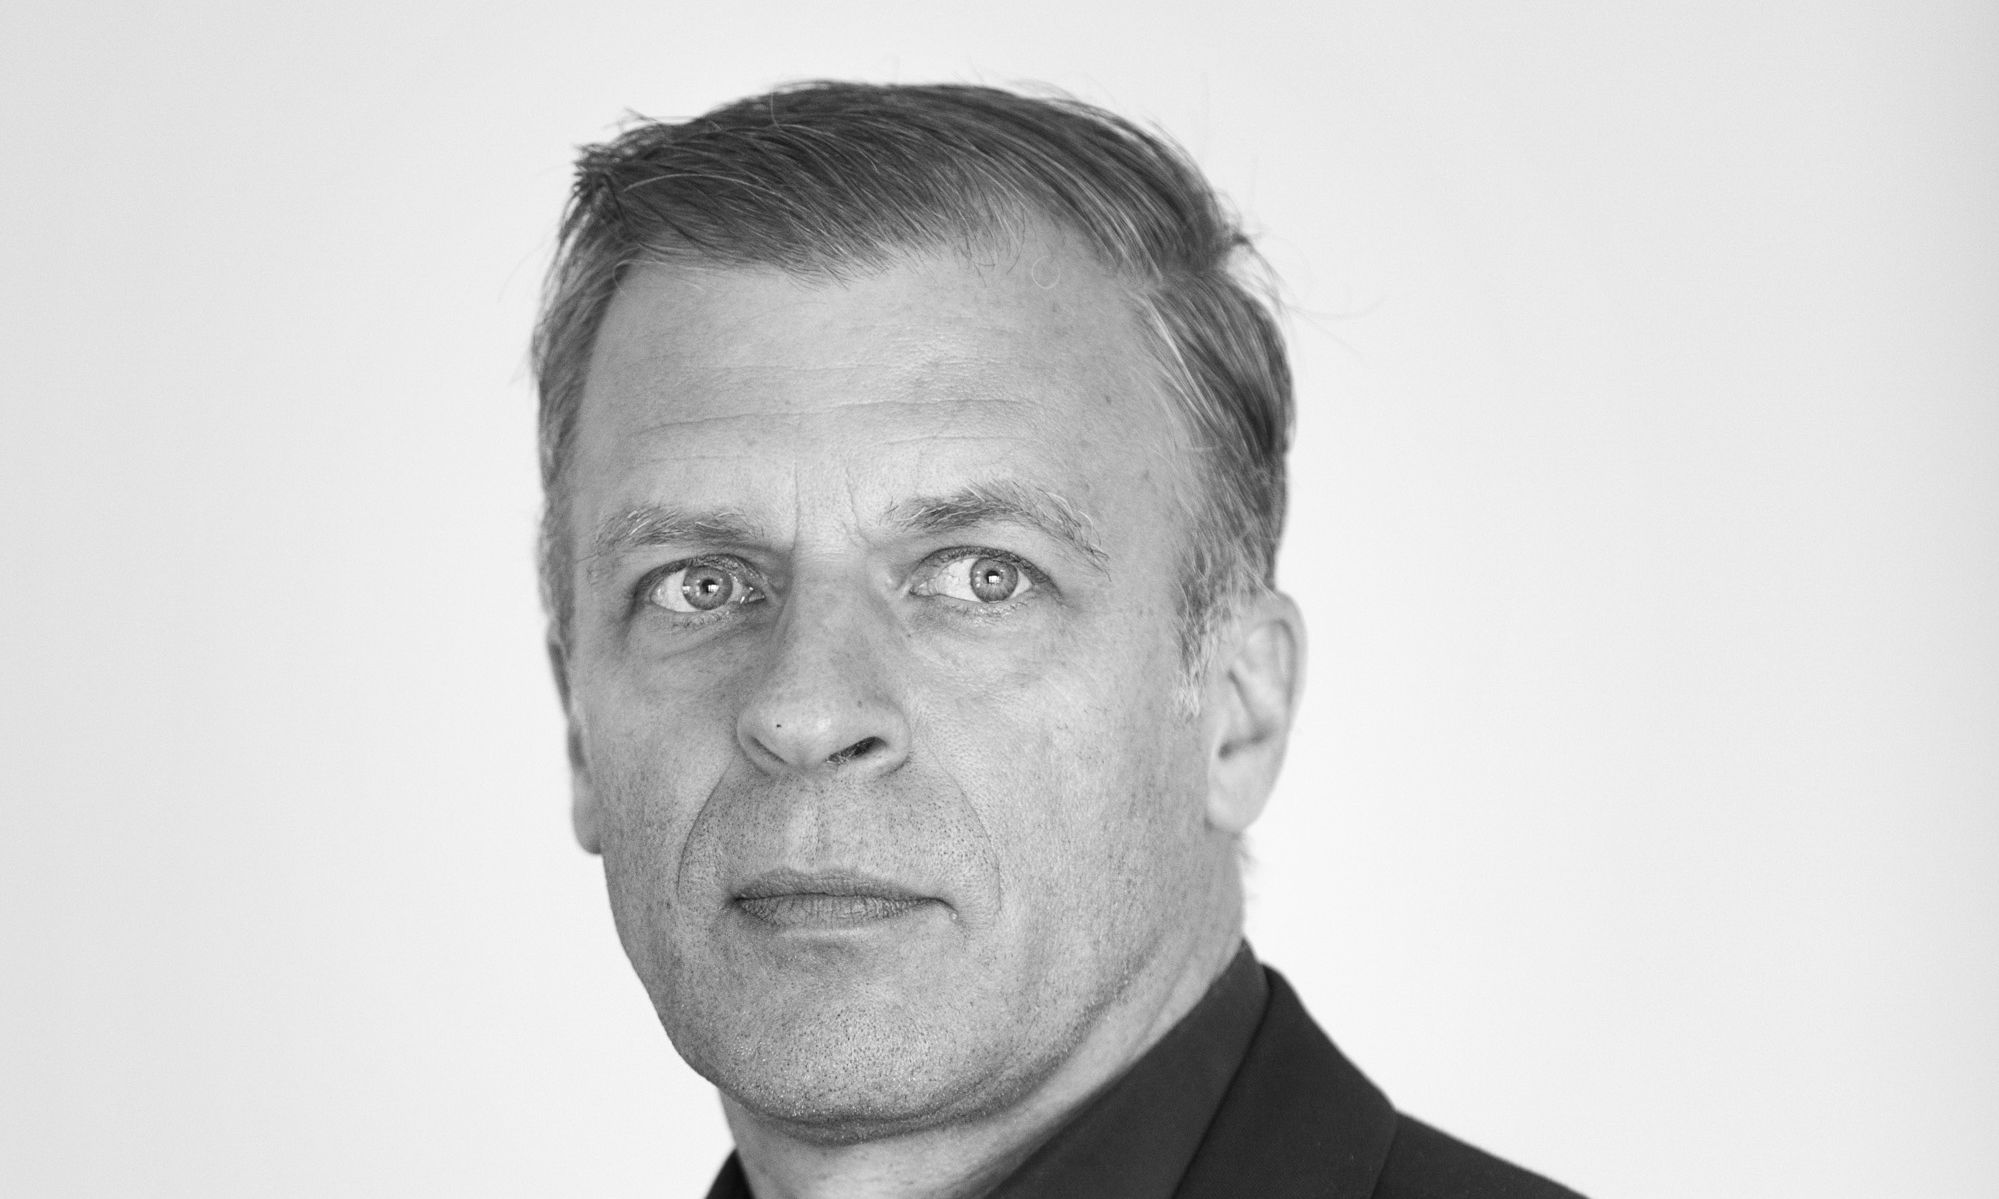 GSG Germany contacts, Martin Vogelsang profile headshot